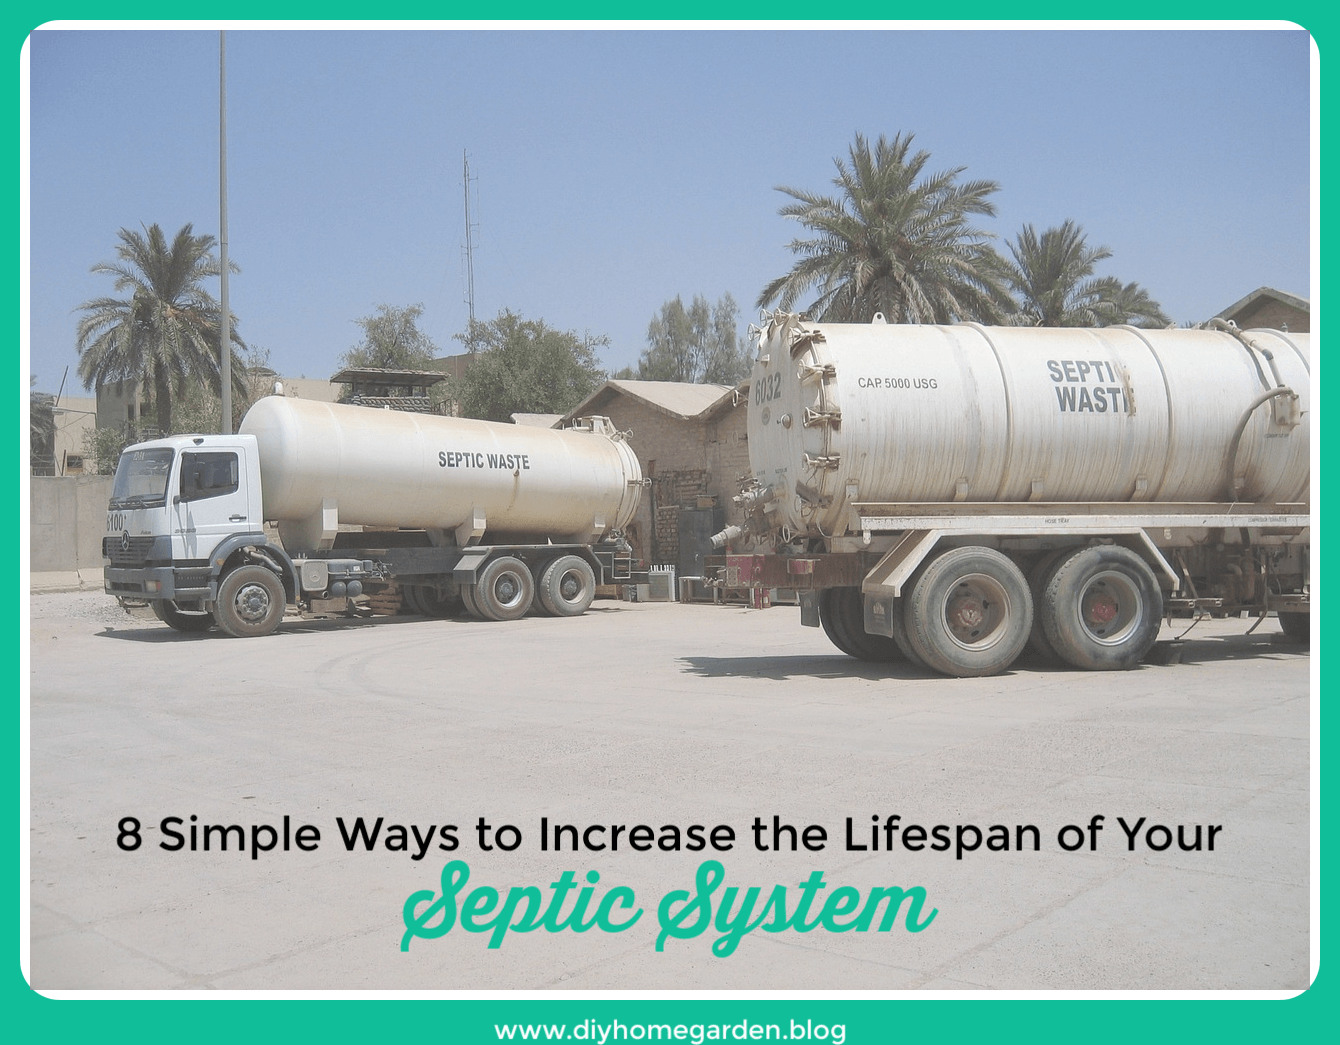 8 Simple Ways to Increase the Lifespan of Your Septic System